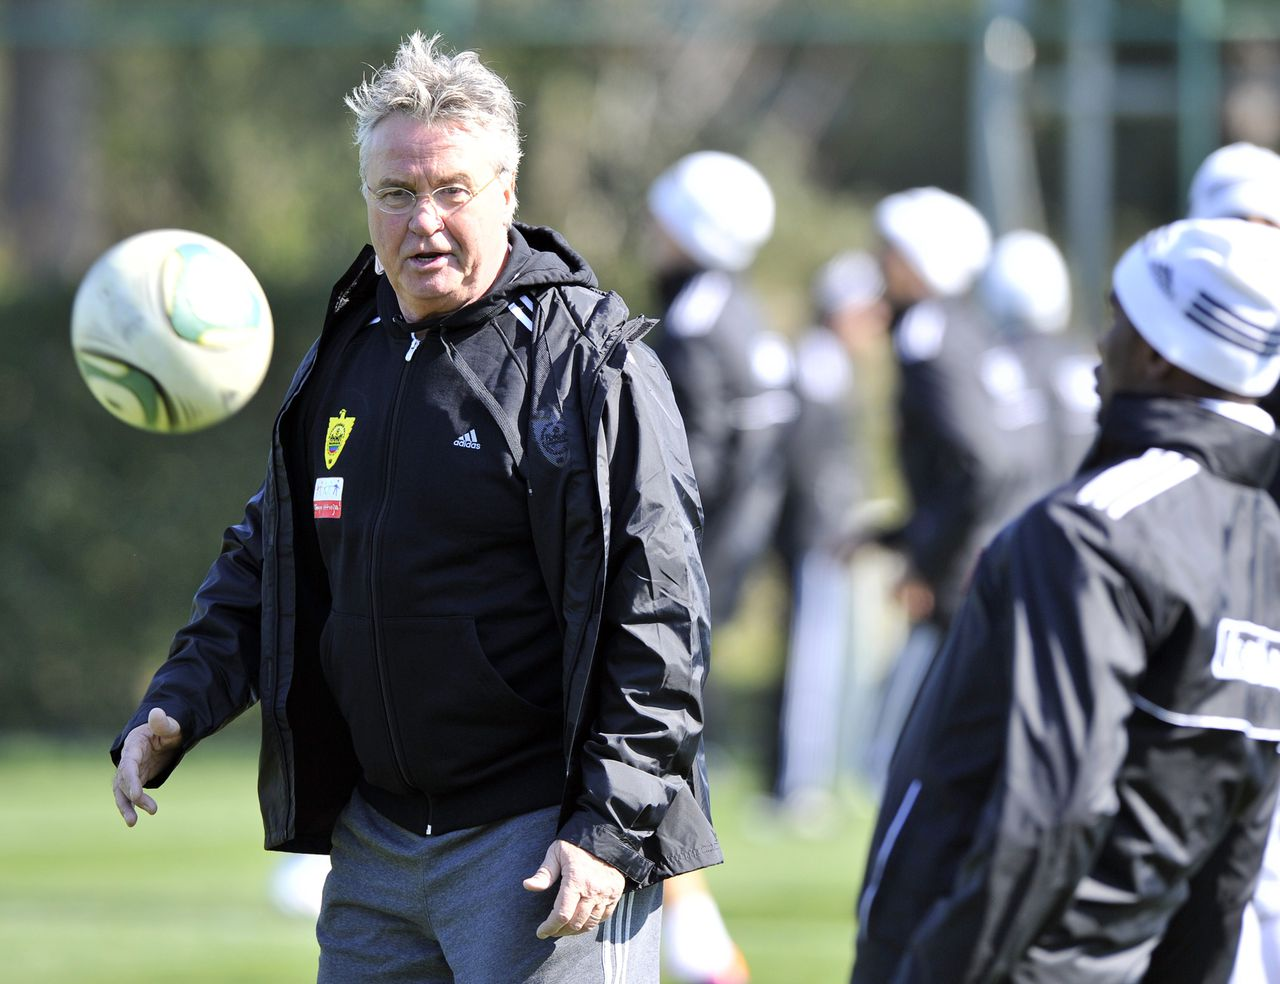 Dutch football coaching Guus Hiddink (L) stands during first training session with Anzhi Makhachkala's football team in Makhachkala on February 18, 2012. AFP PHOTO / SERGEI RASULOV JR.